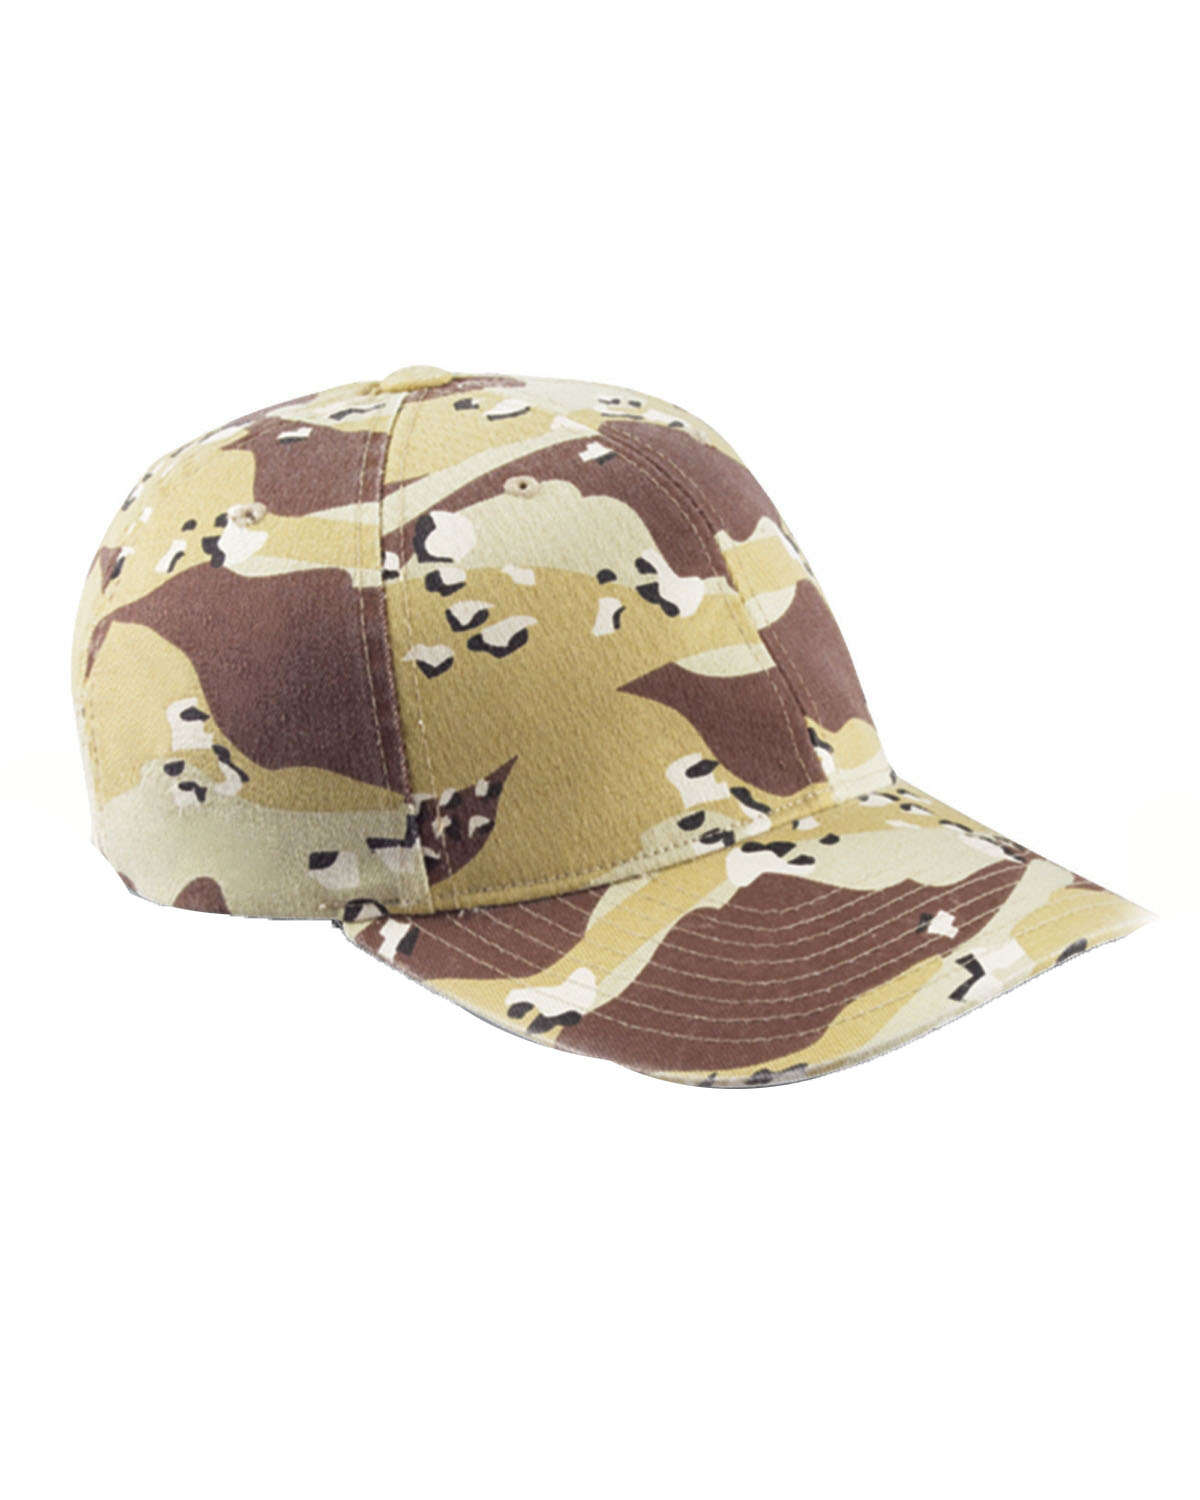 Yupoong 6977CA Unisex Cotton Camouflage Cap at GotApparel